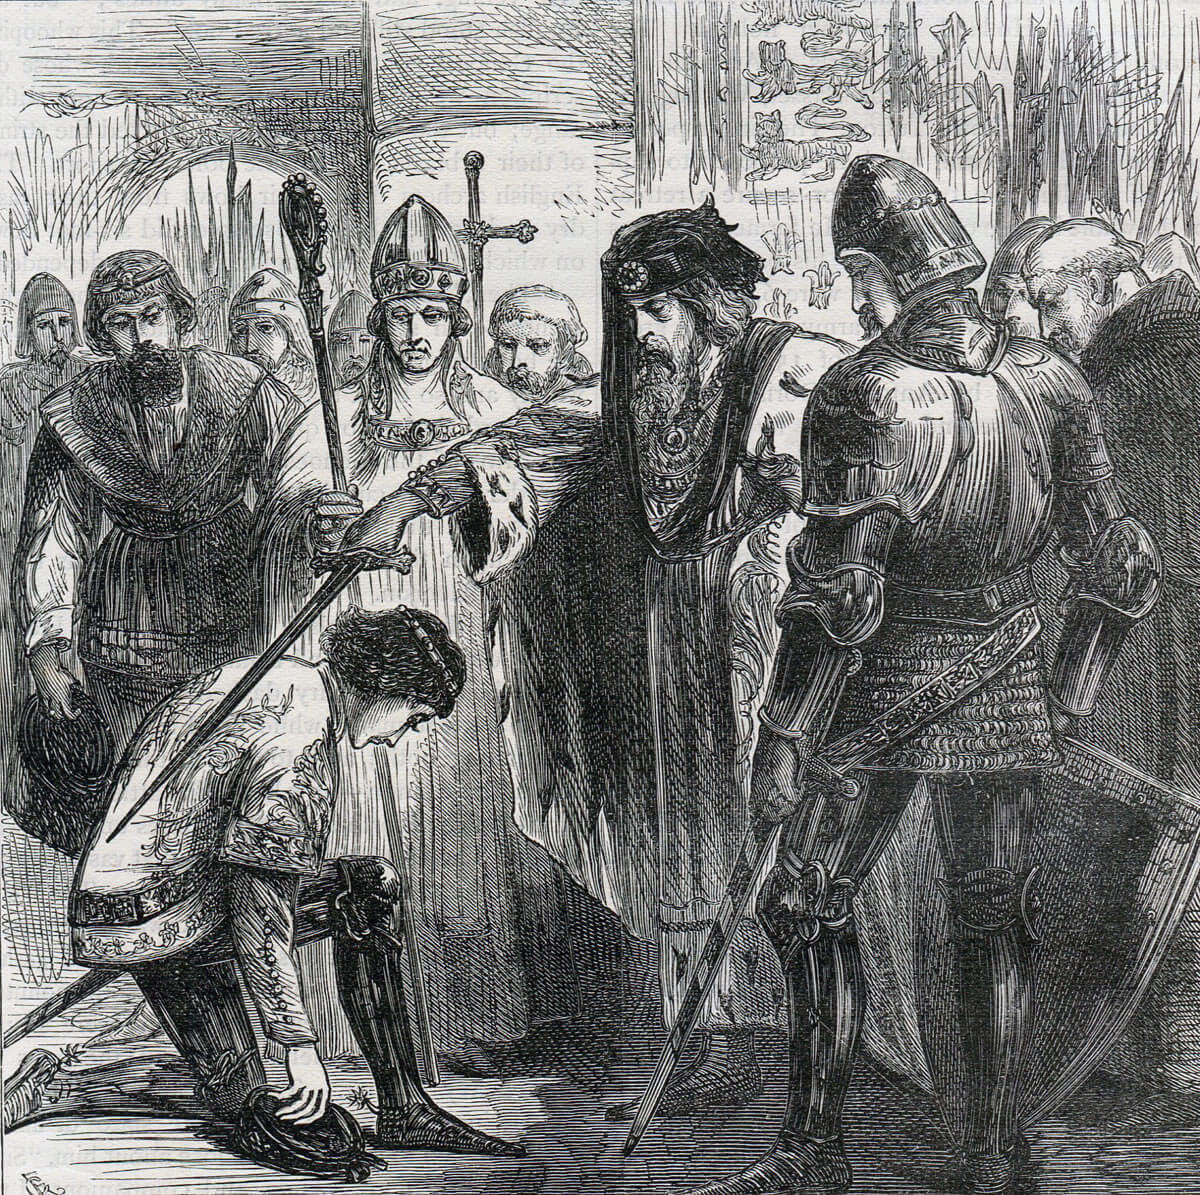 King Edward III knighting the Black Prince after the Battle of Creçy on 26th August 1346 in the Hundred Years War